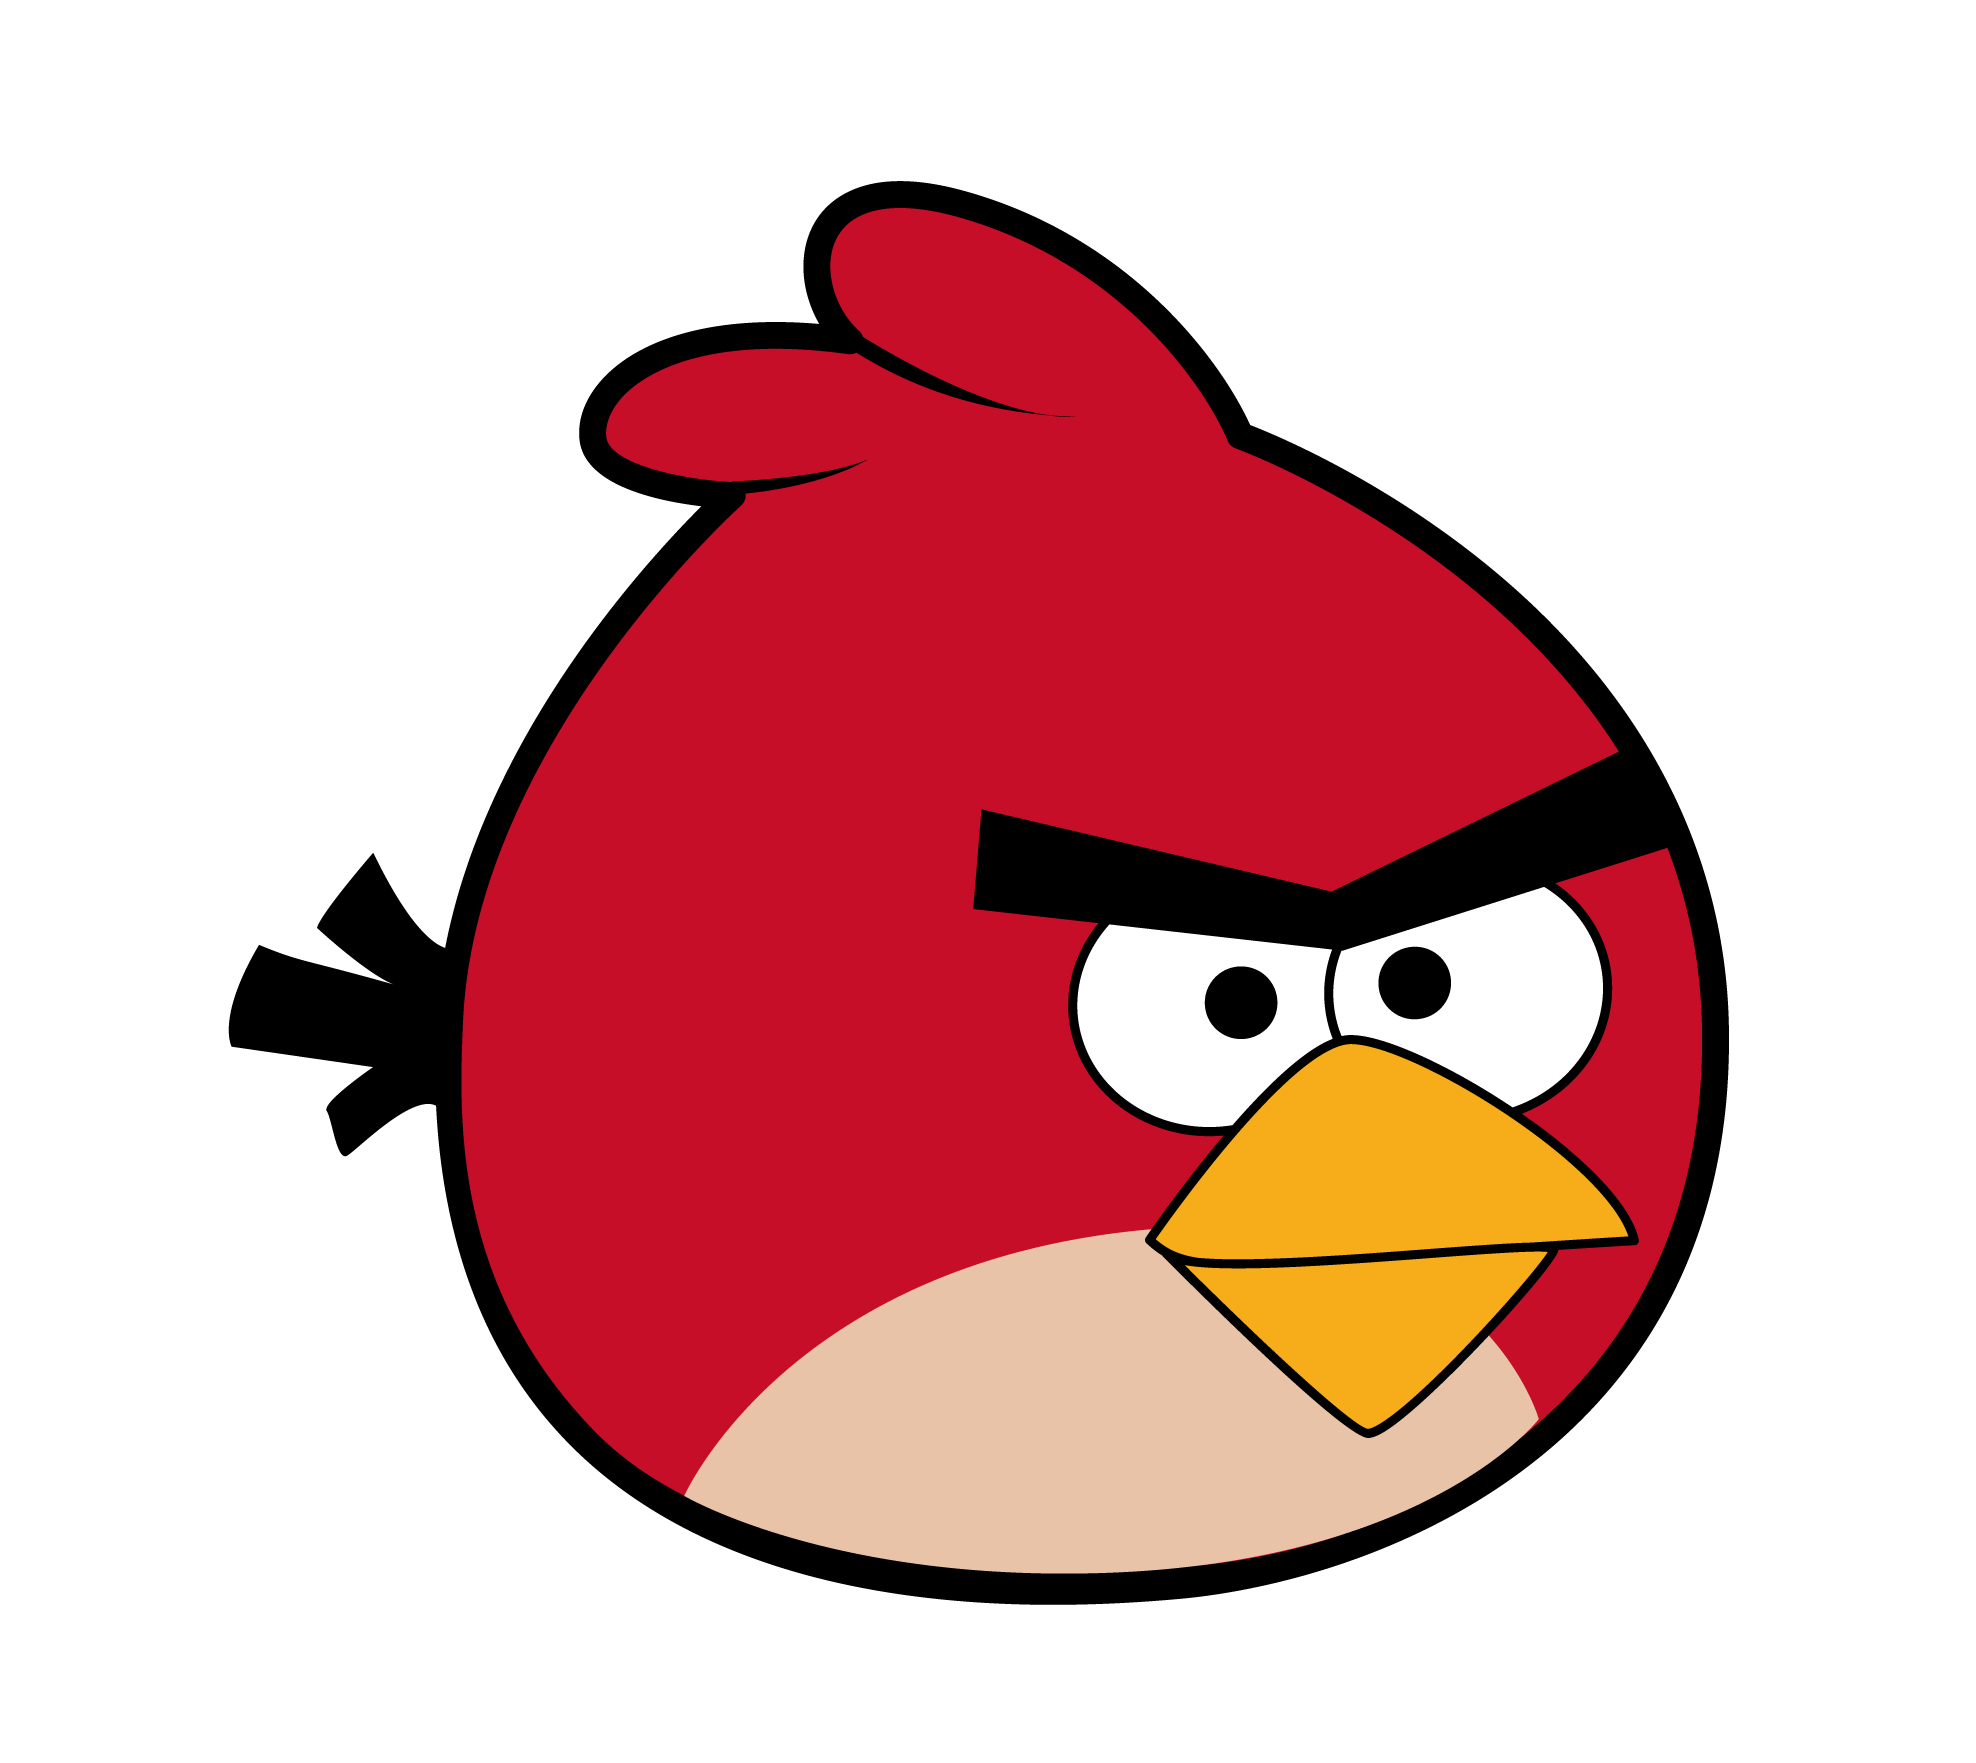 Bird clipart face Clipart Finch Finch Red drawings